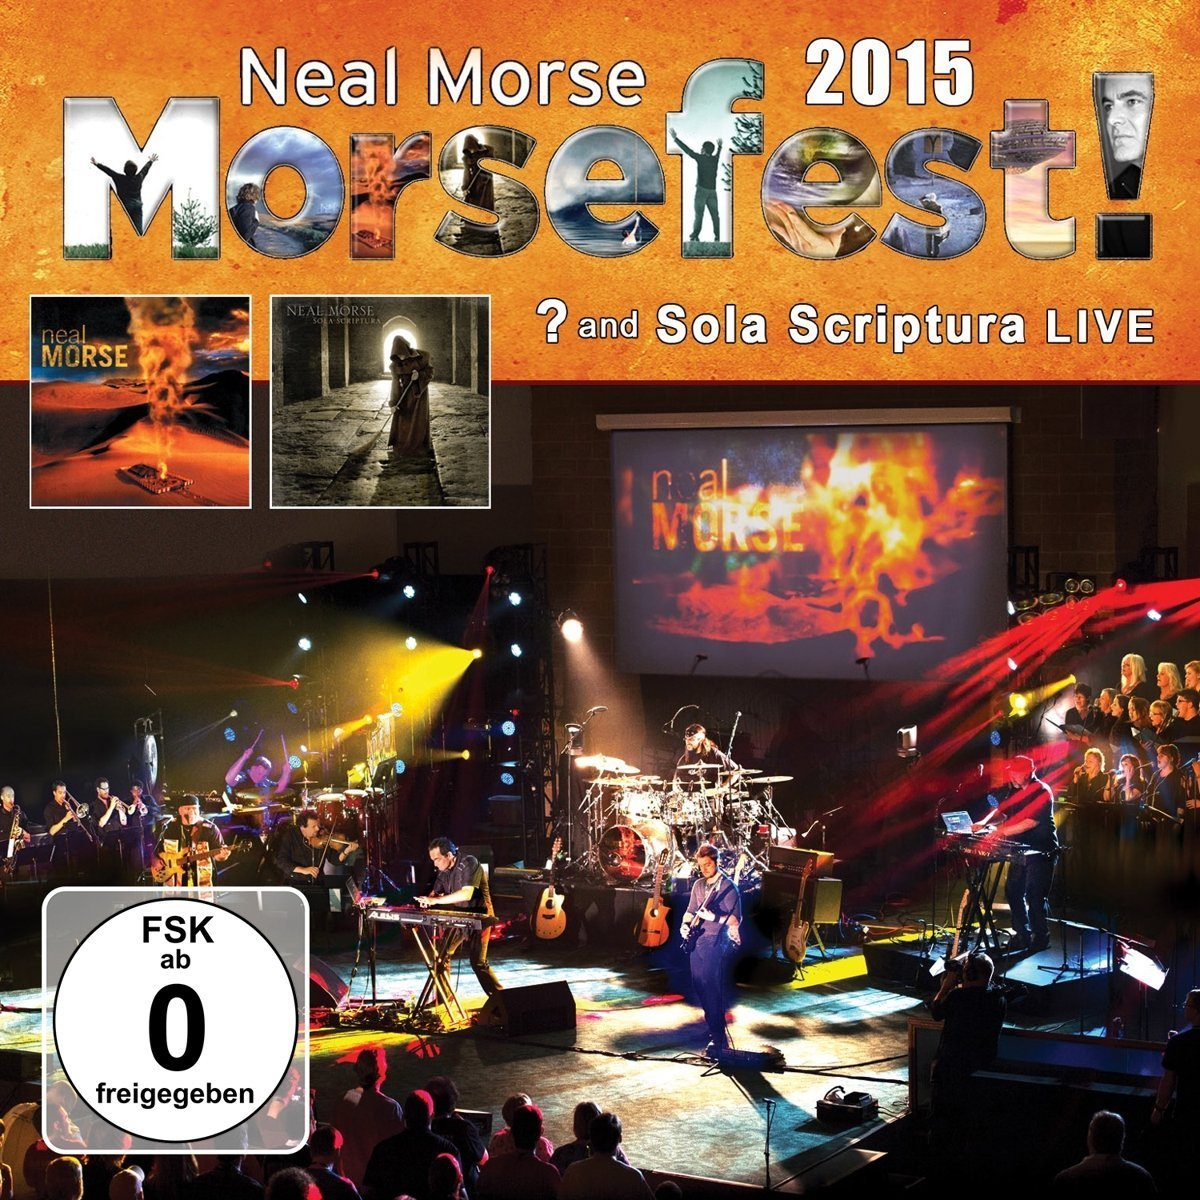 CD : Neal Morse - Morsefest 2015 Sola Scriptural And? Live (With DVD, Digipack Packaging, 6 Disc)